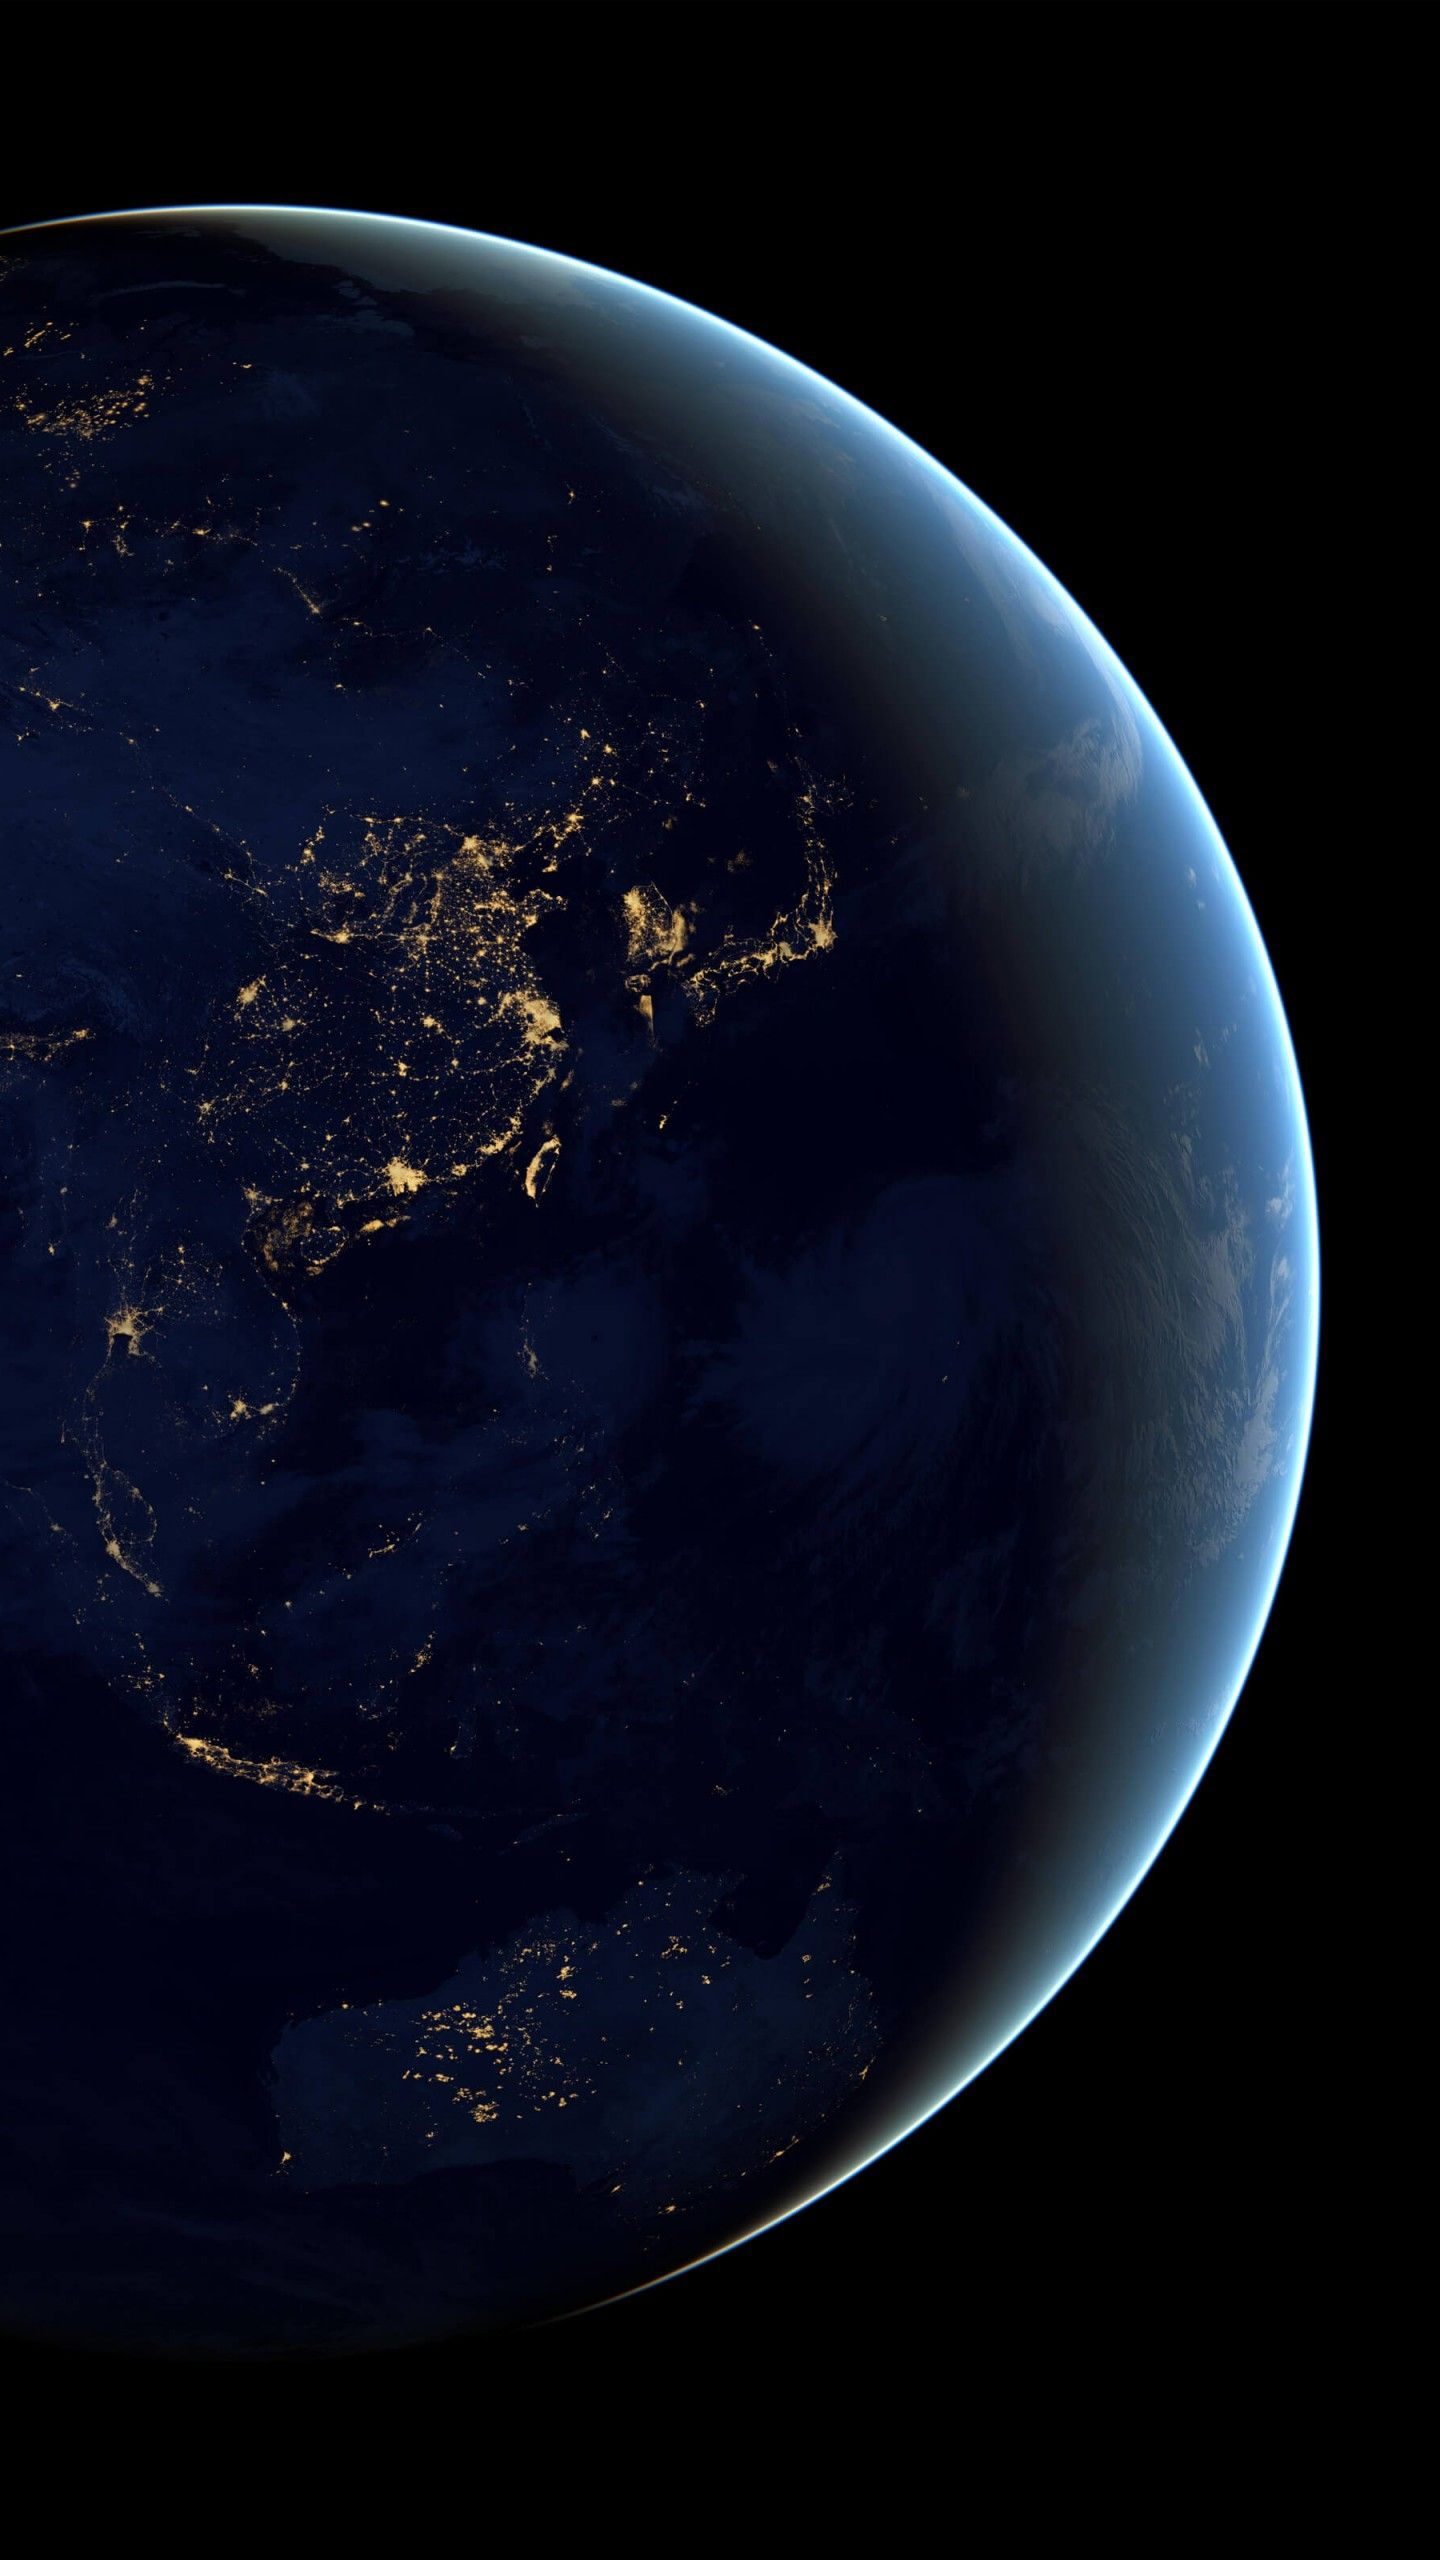 Earth-From-Space-Mobile-http-and-backgrounds-net-earth-from-space-mobile-wall-wallpaper-wp3405153